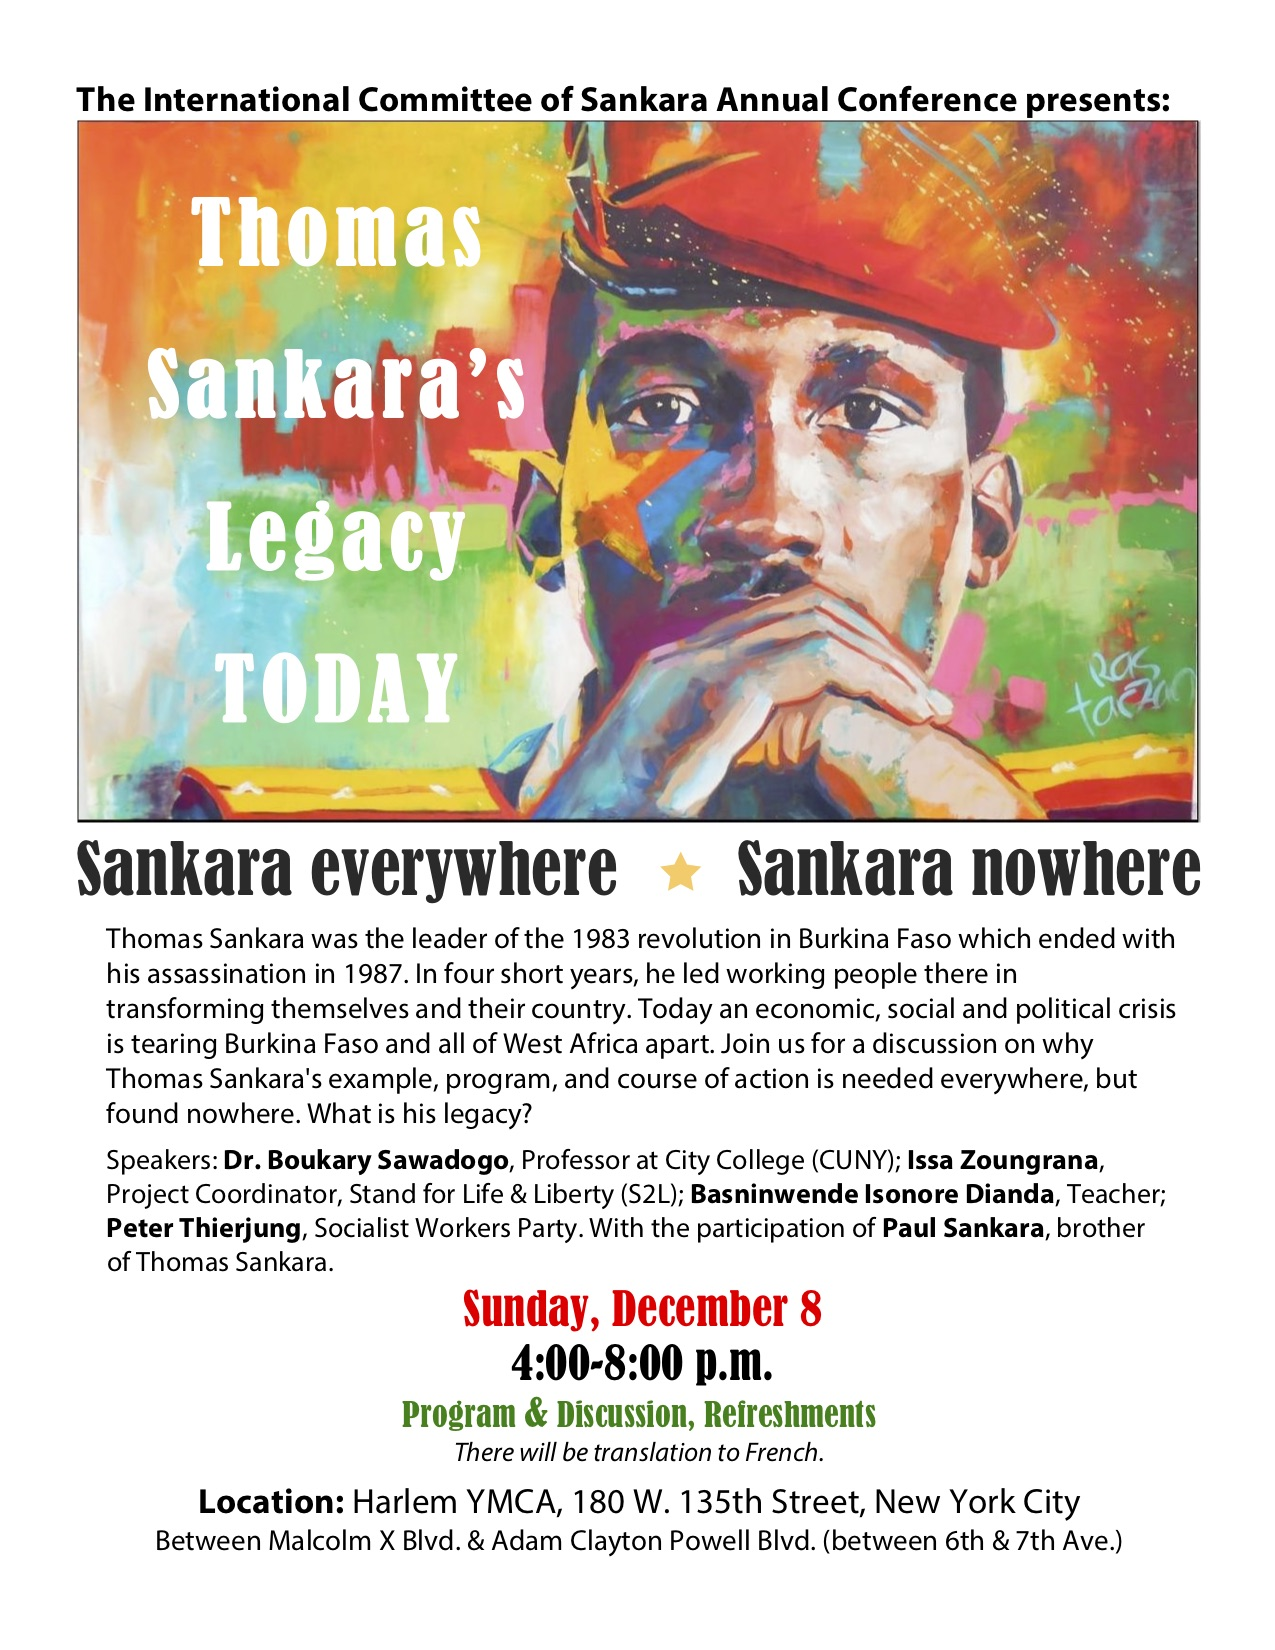 Discussion about the legacy of Thomas Sankara